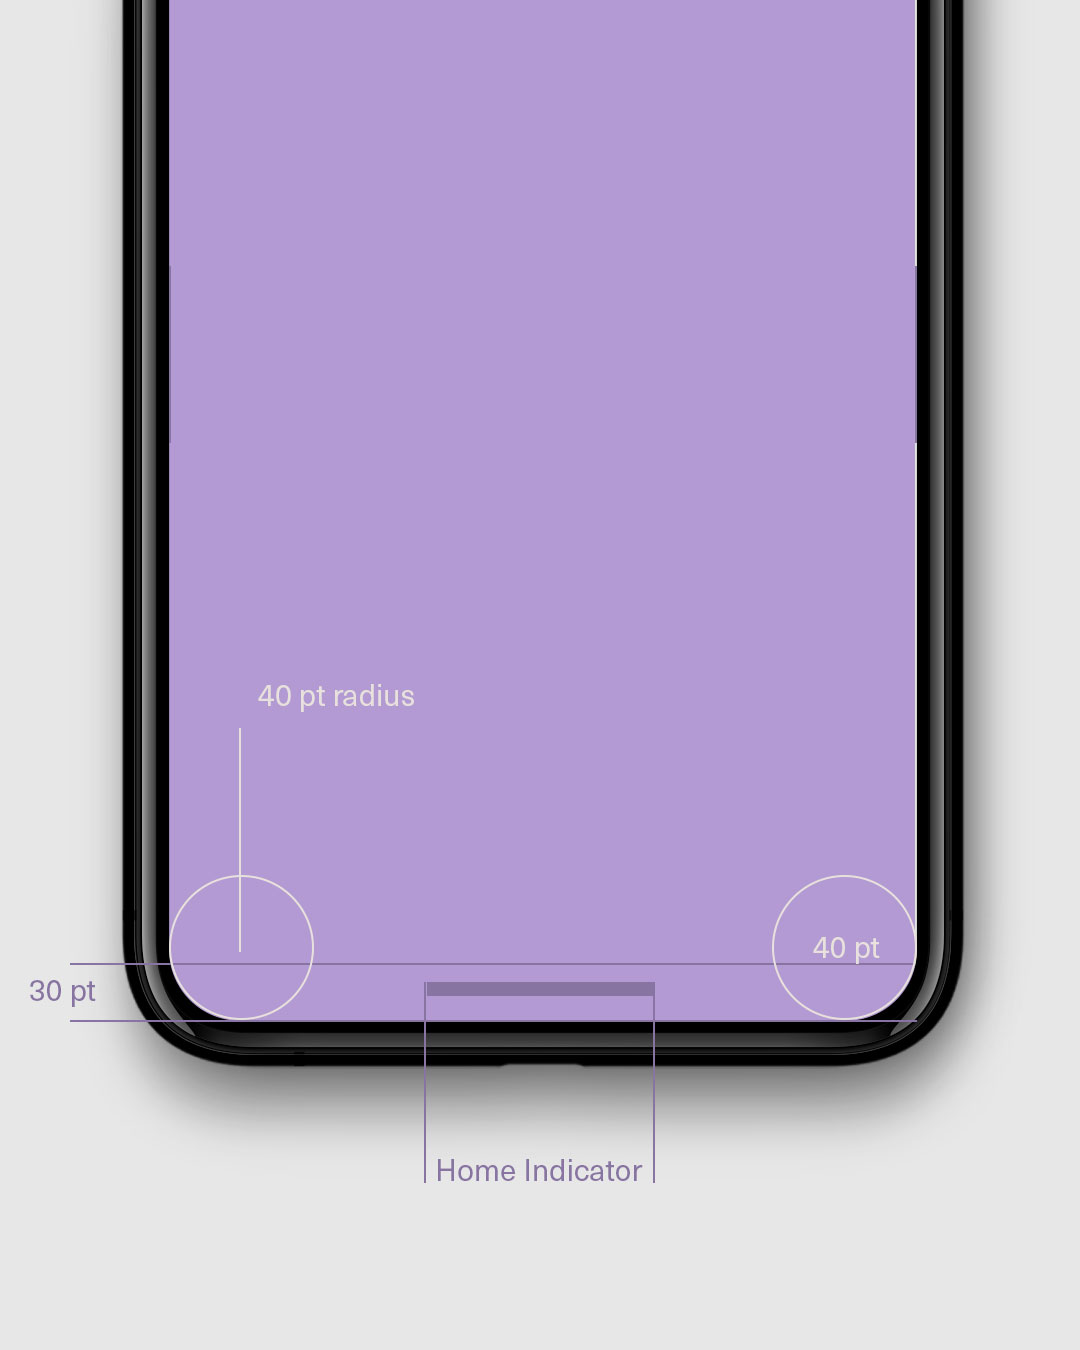 iPhone X Home indicator